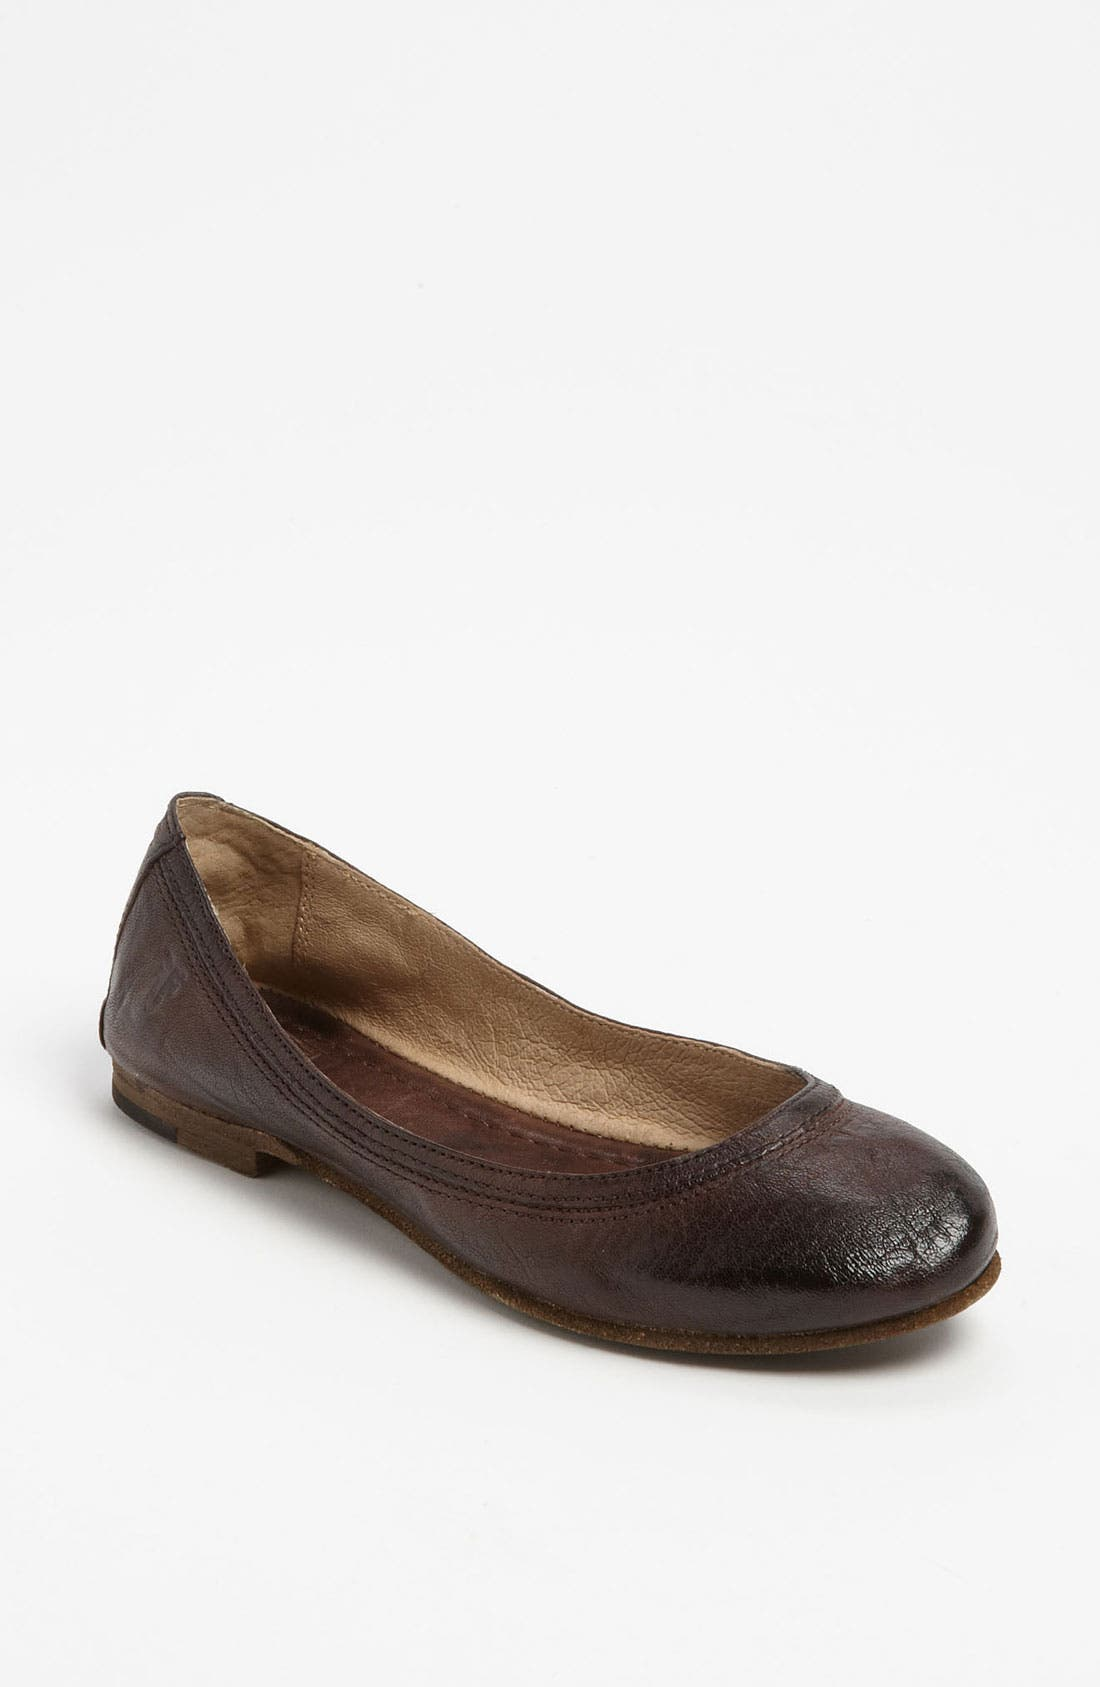 Alternate Image 1 Selected - Frye 'Carson' Ballet Flat (Women)